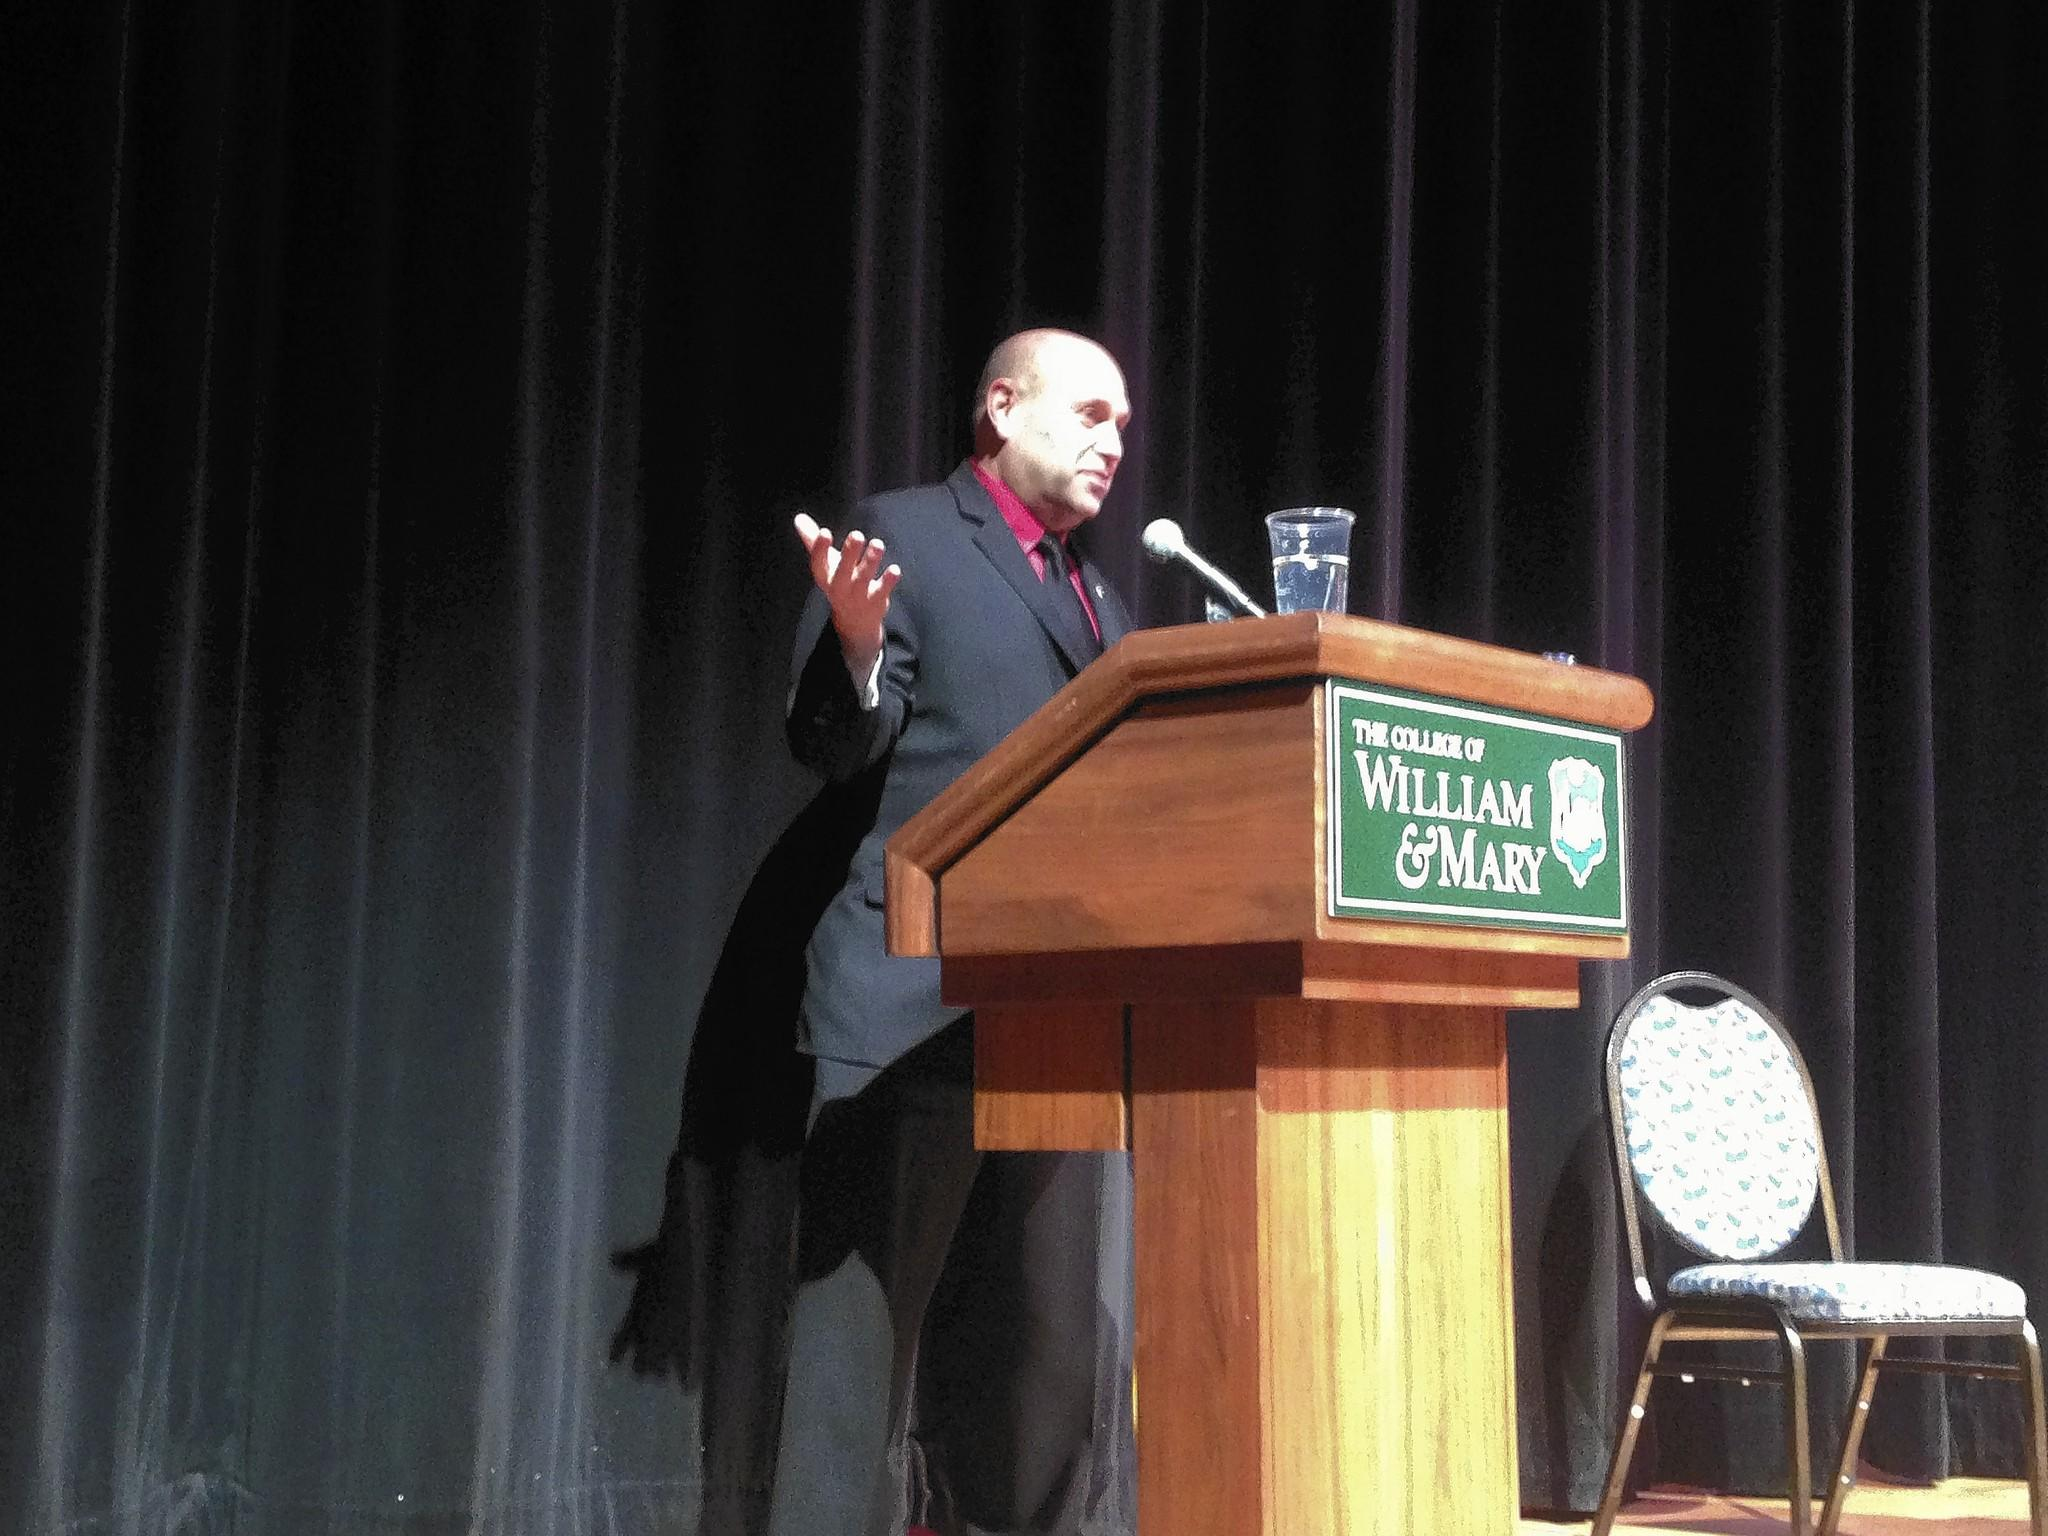 Speaking at William and Mary, Mikey Weinstein rails against religious intolerance in the military